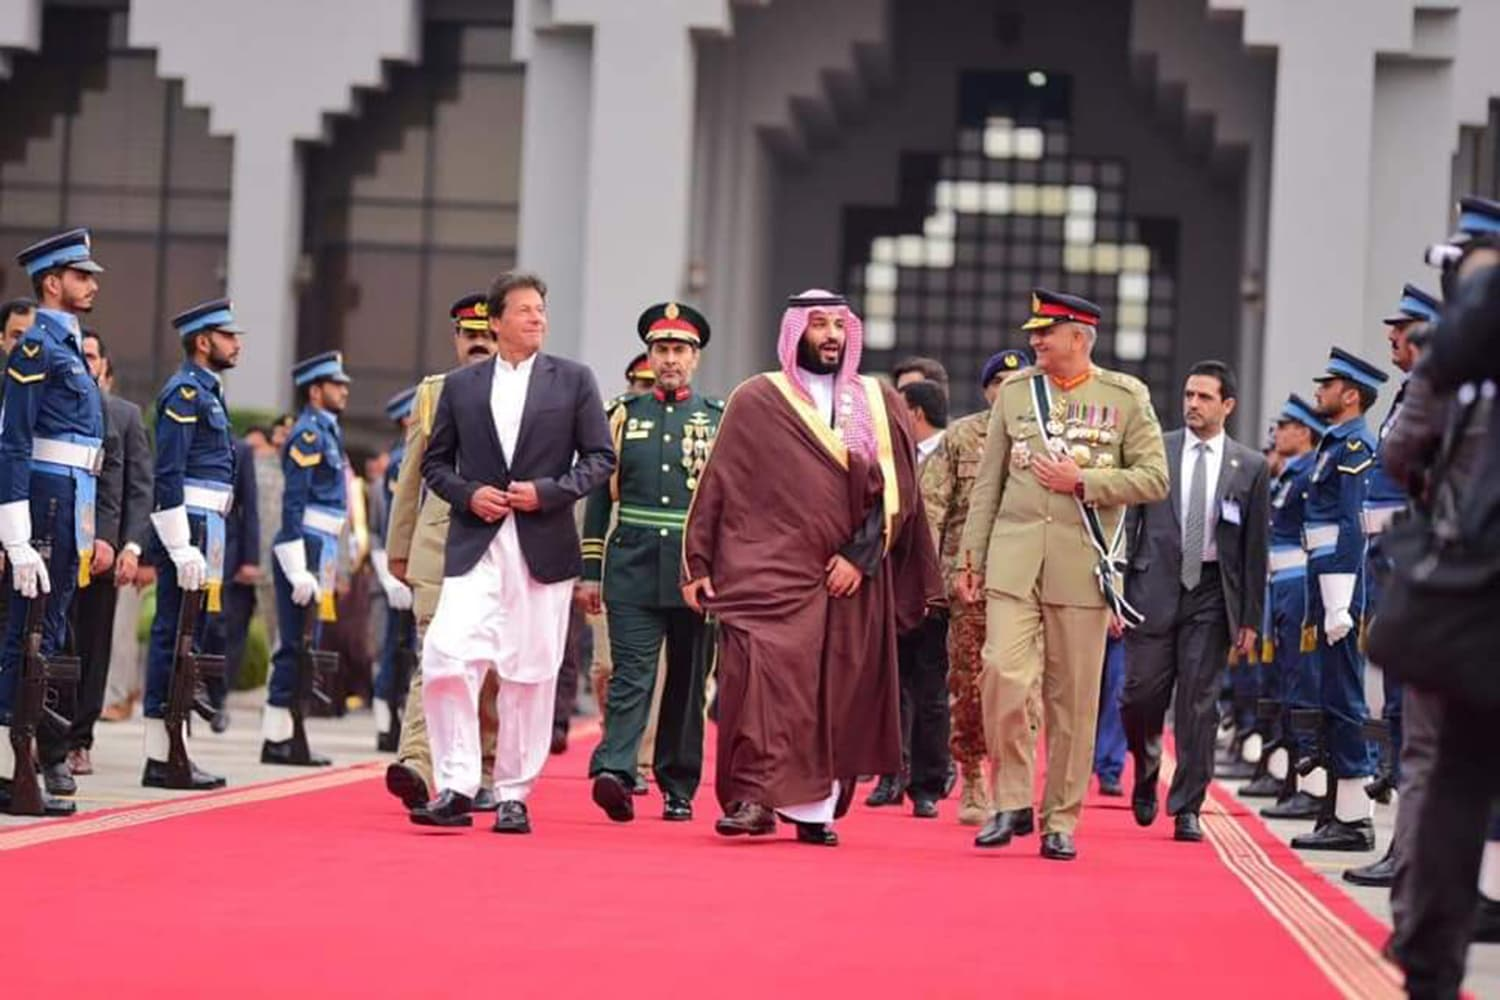 Prime Minister Imran Khan and Chief of Army Staff Gen Qamar Javed Bajwa later saw off Crown Prince Mohammad bin Salman at Nur Khan Airbase on Monday evening. — Photo courtesy PTI Official Twitter